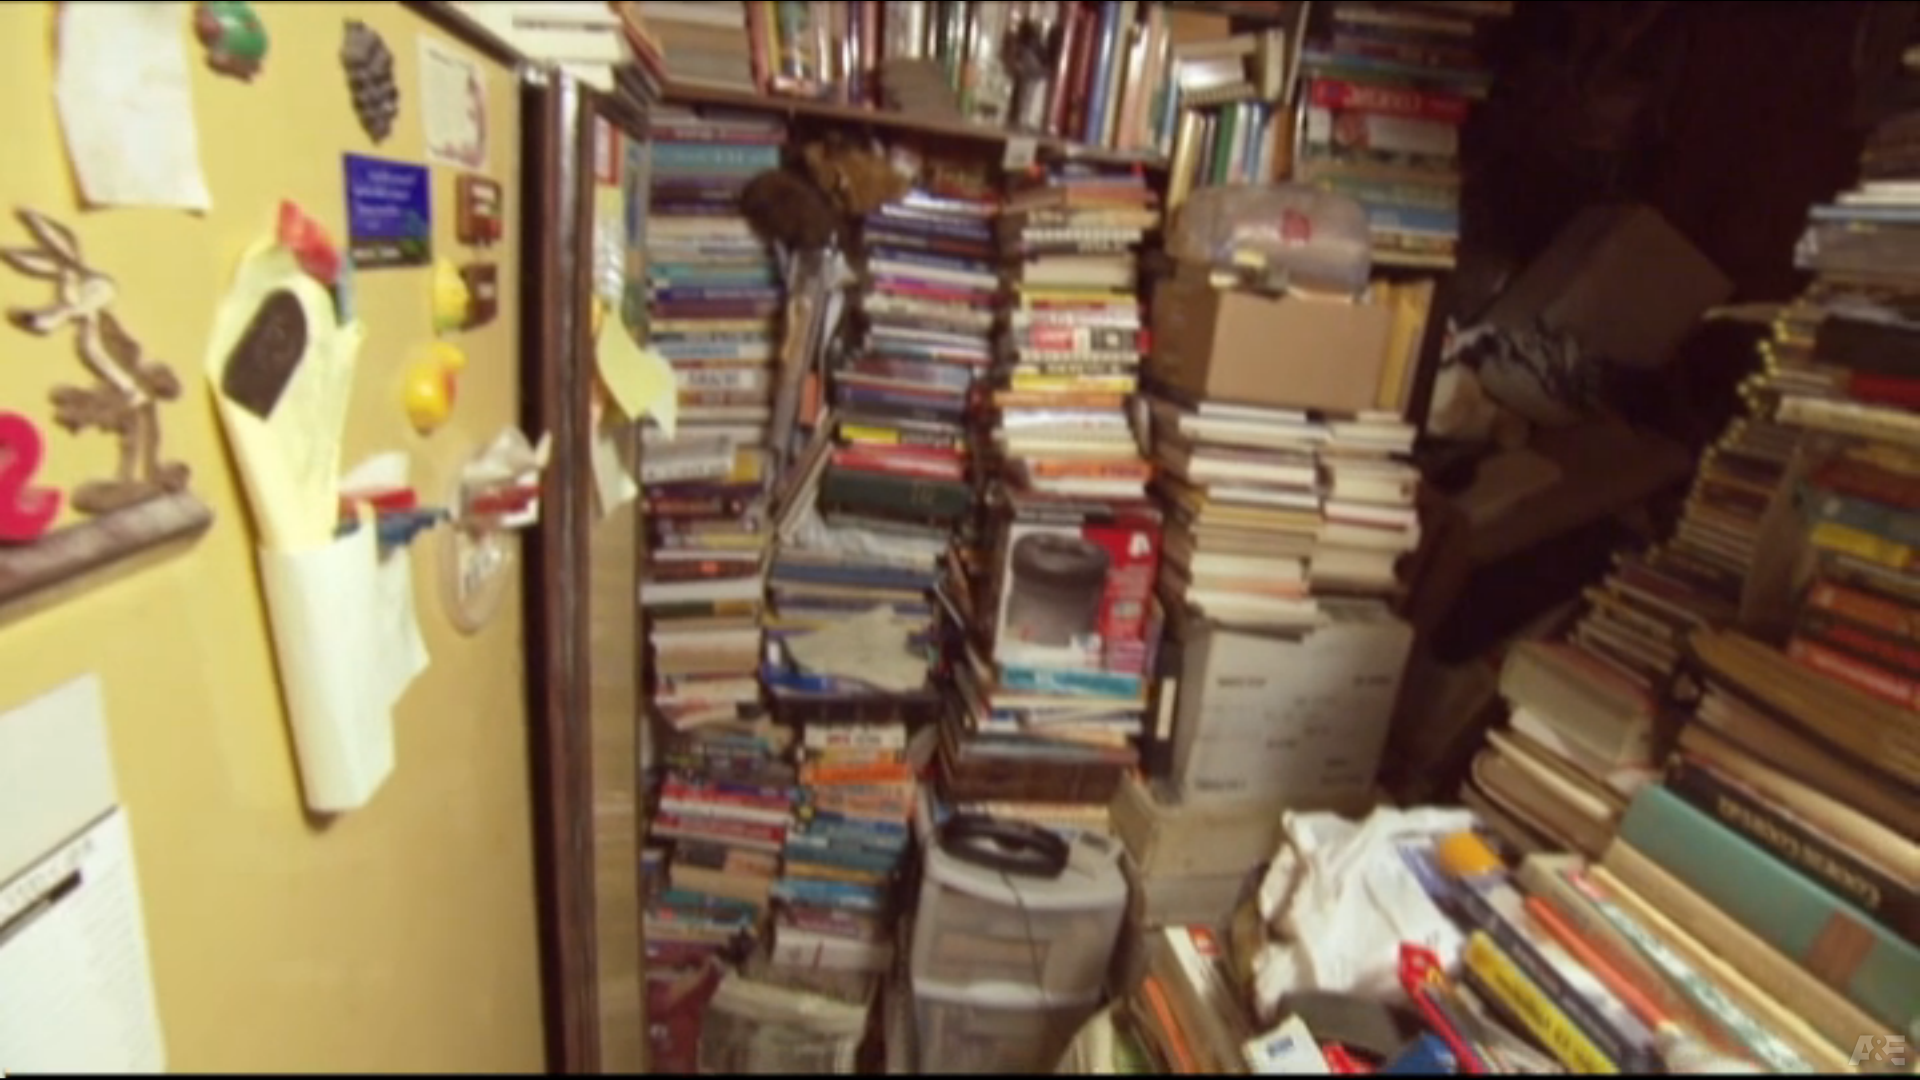 Book hoarding: The down side